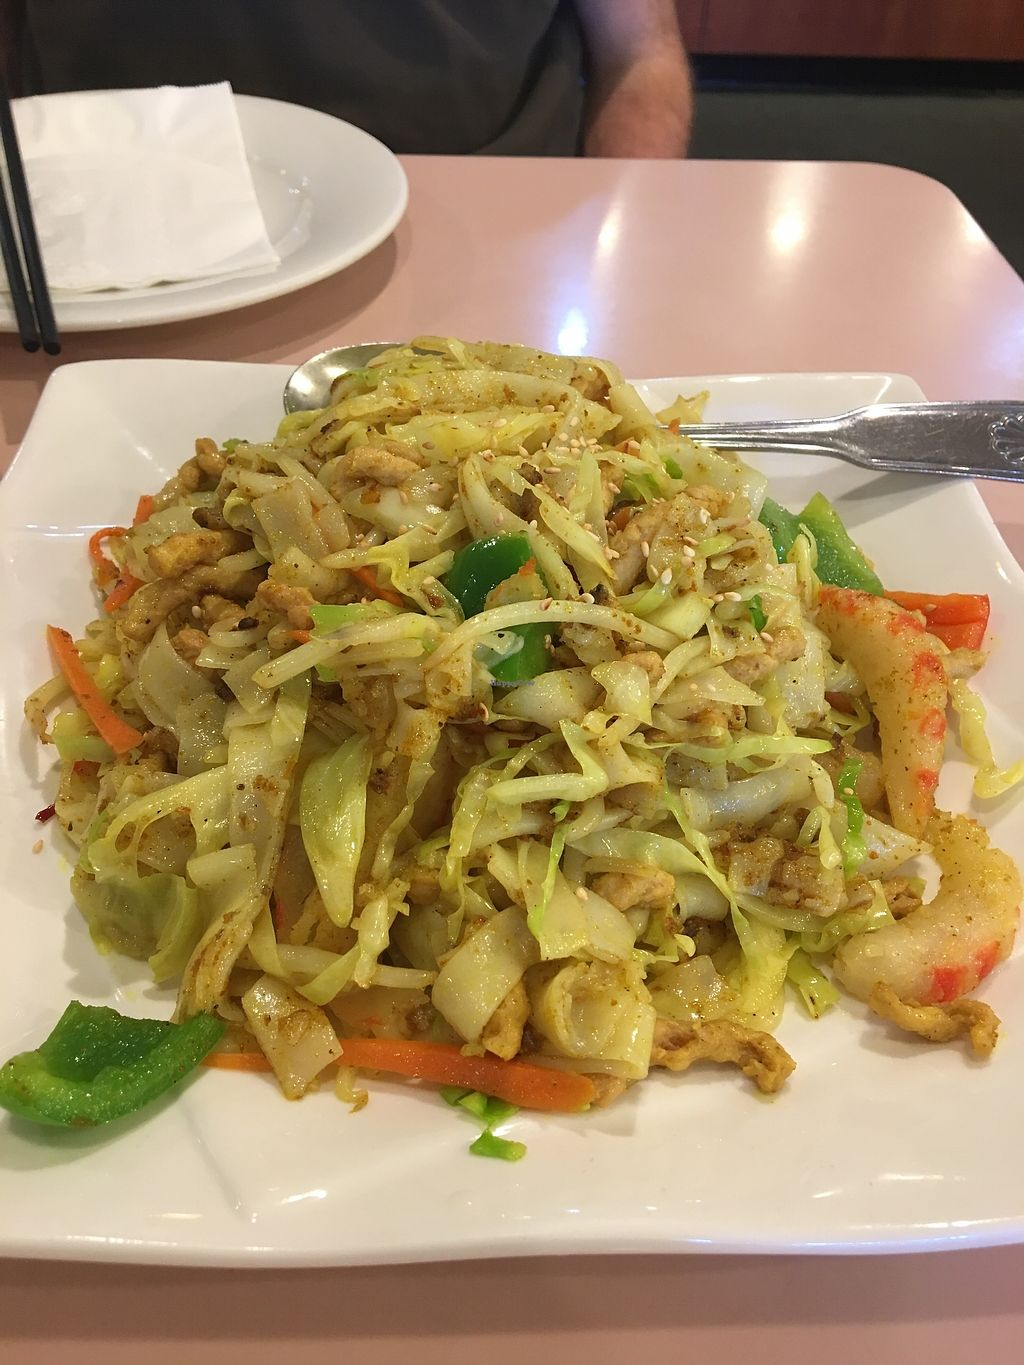 """Photo of Veggie Lee  by <a href=""""/members/profile/Clean%26Green"""">Clean&Green</a> <br/>Singaporean rice noodles, was okay <br/> March 29, 2018  - <a href='/contact/abuse/image/58042/378031'>Report</a>"""